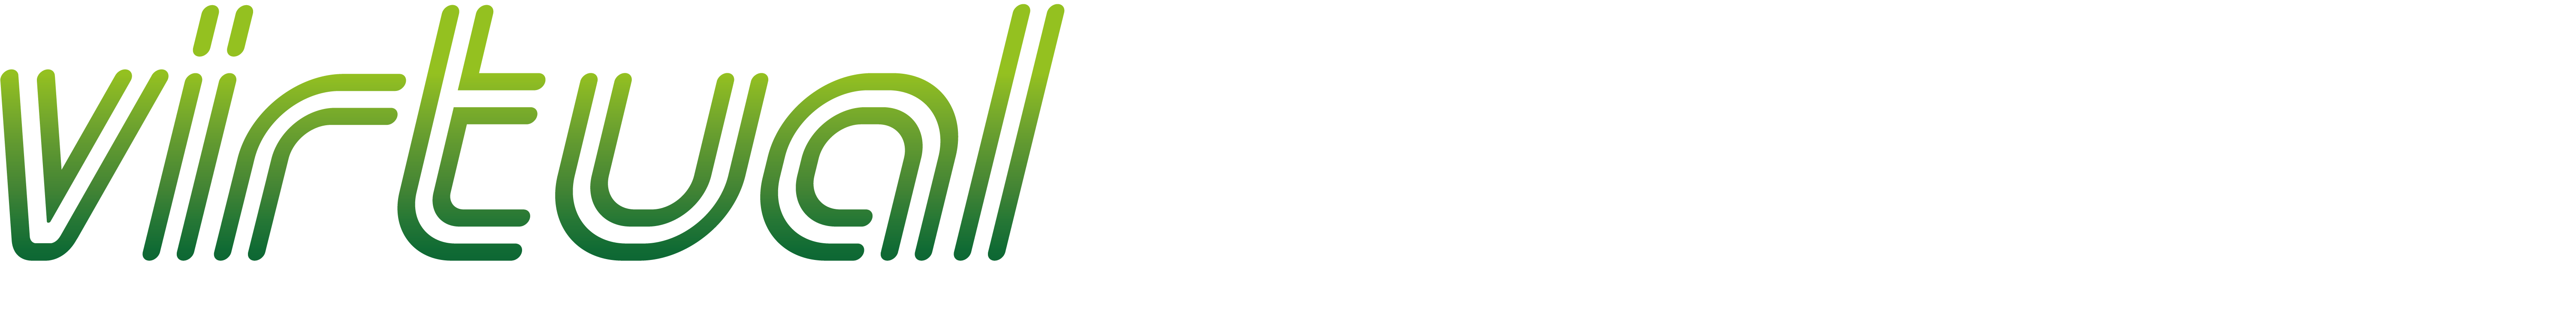 virtual-performance-logo-white